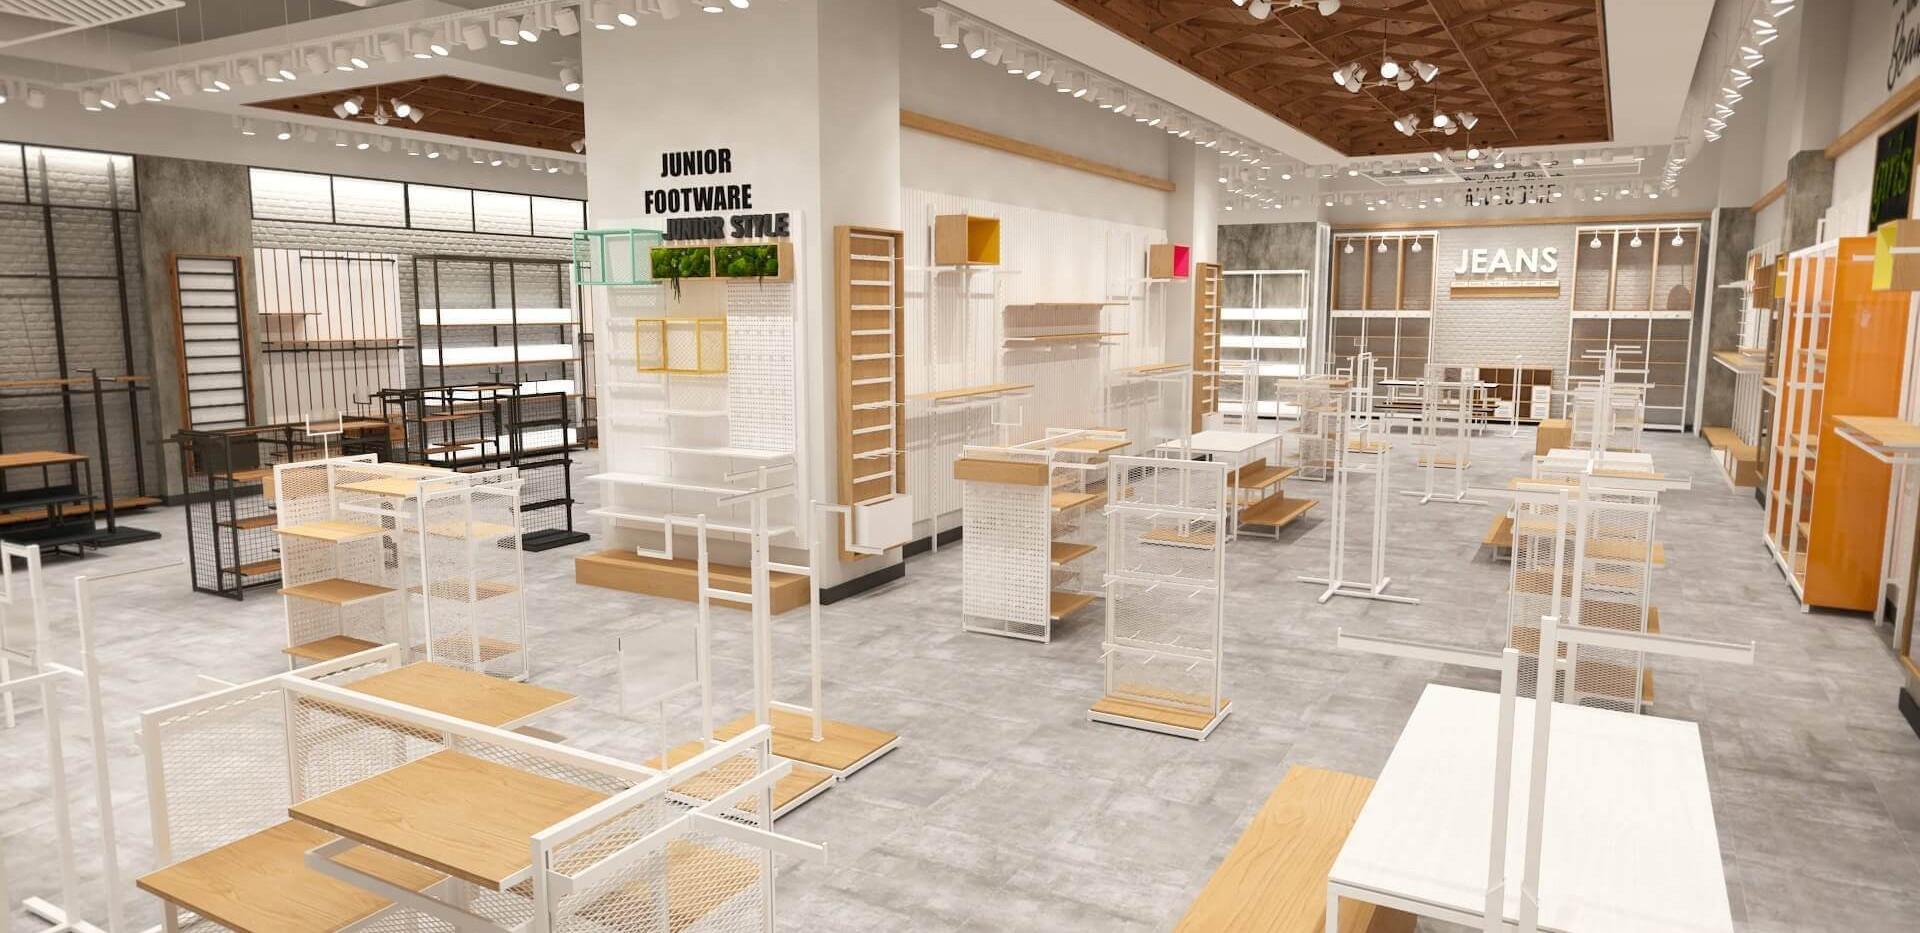 Outfitters - Fashion Store Shop Design-9